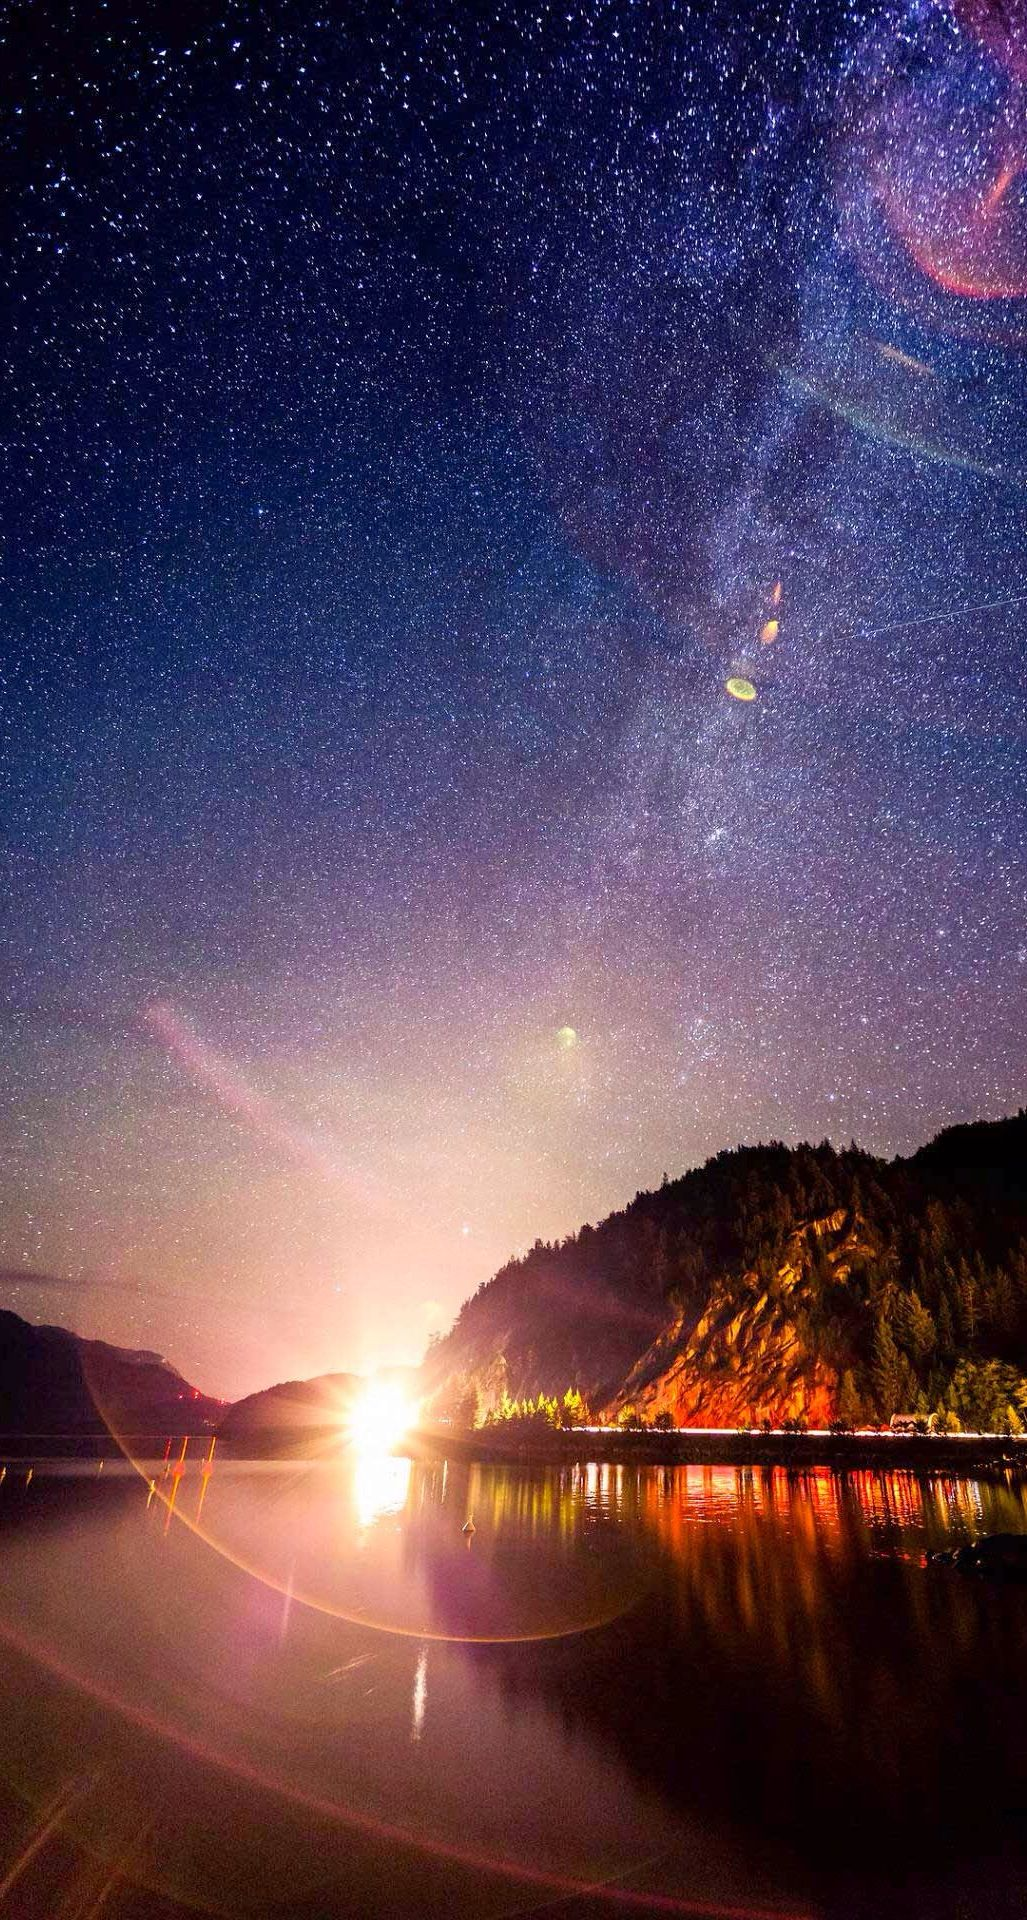 Milky Way. Calm your mood with these 10 Peaceful Evening